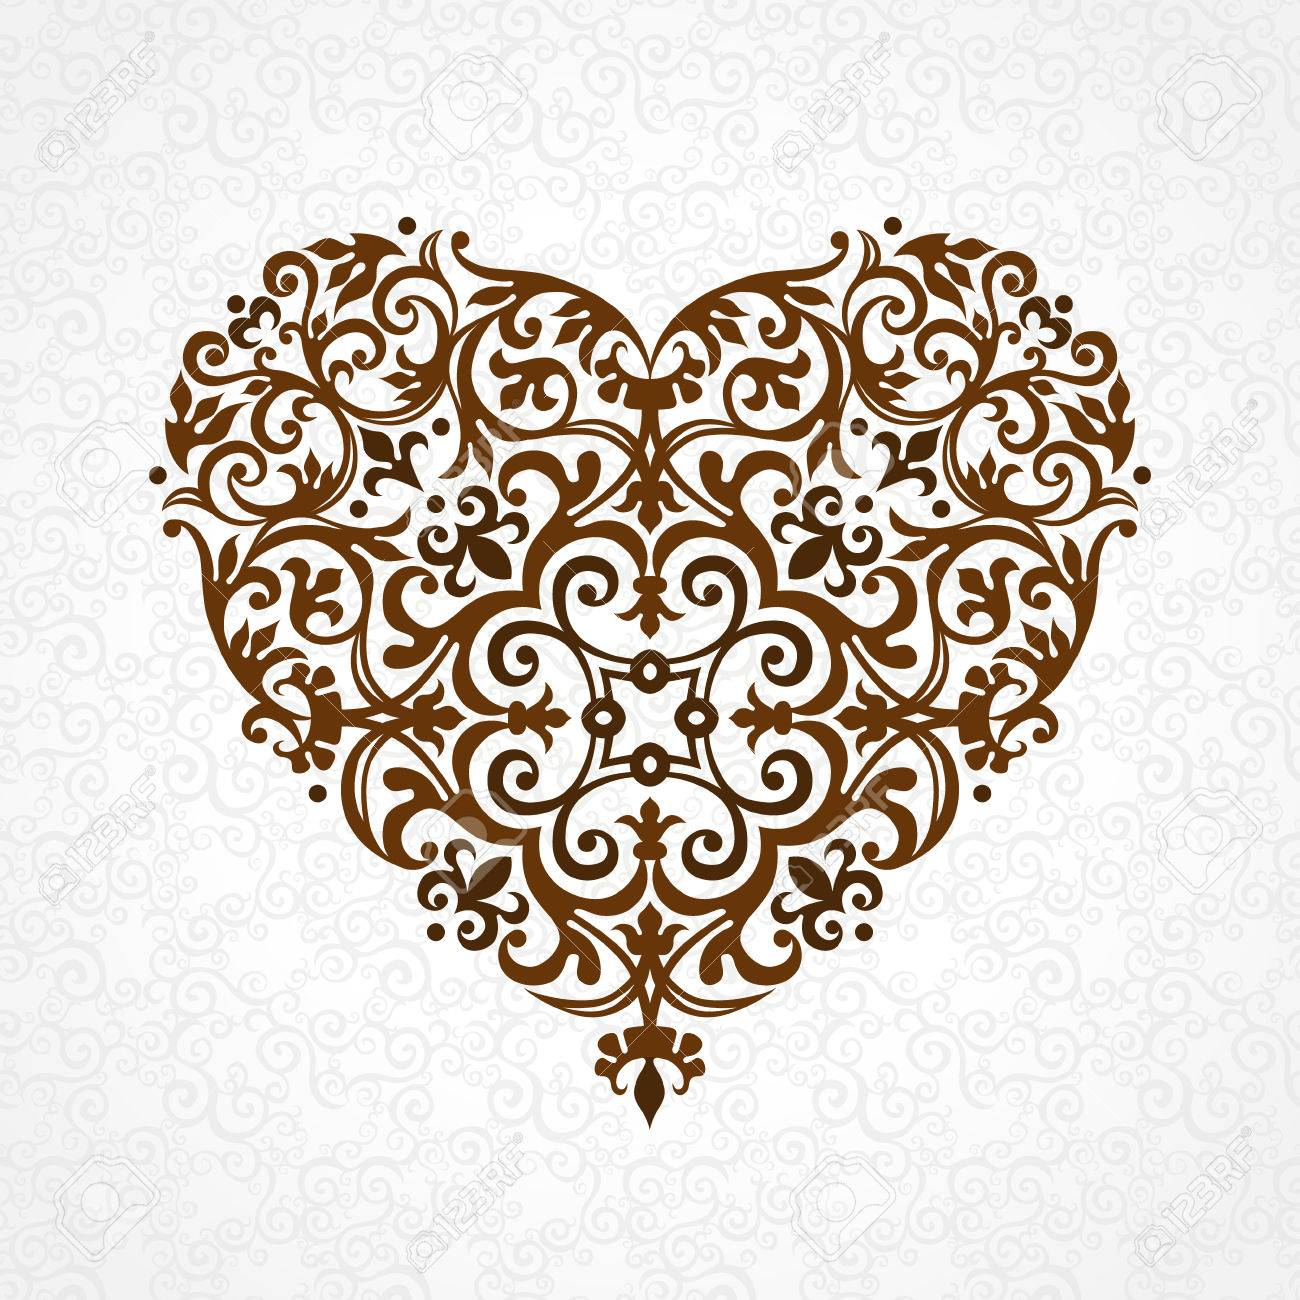 Ornate Vector Heart In Victorian Style Elegant Element For Logo Design Lace Floral Illustration